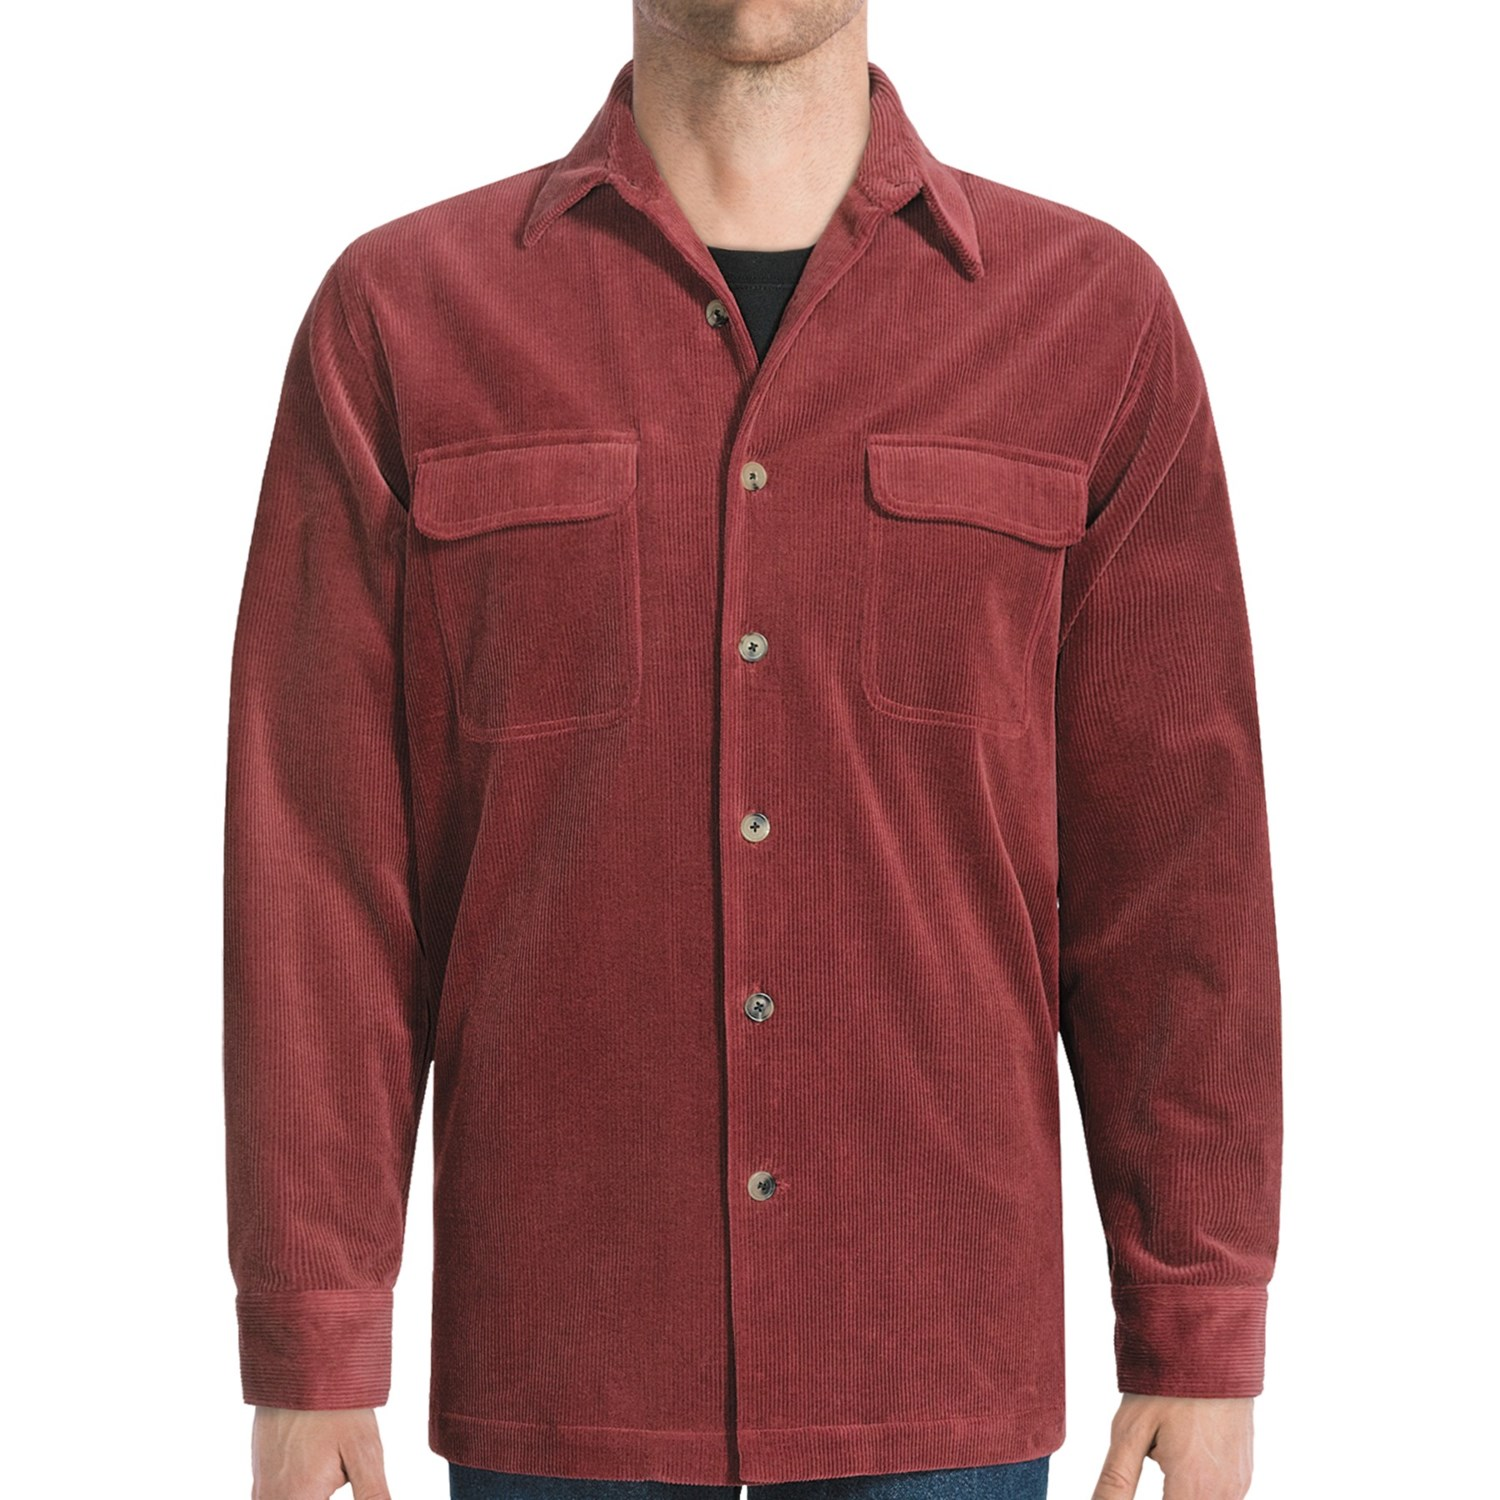 Shop for and buy corduroy shirt online at Macy's. Find corduroy shirt at Macy's. Macy's Presents: The Edit- A curated mix of fashion and inspiration Check It Out. Free Shipping with $49 purchase + Free Store Pickup. Contiguous US. Barbour Men's Abbleby Corduroy Shirt, A .